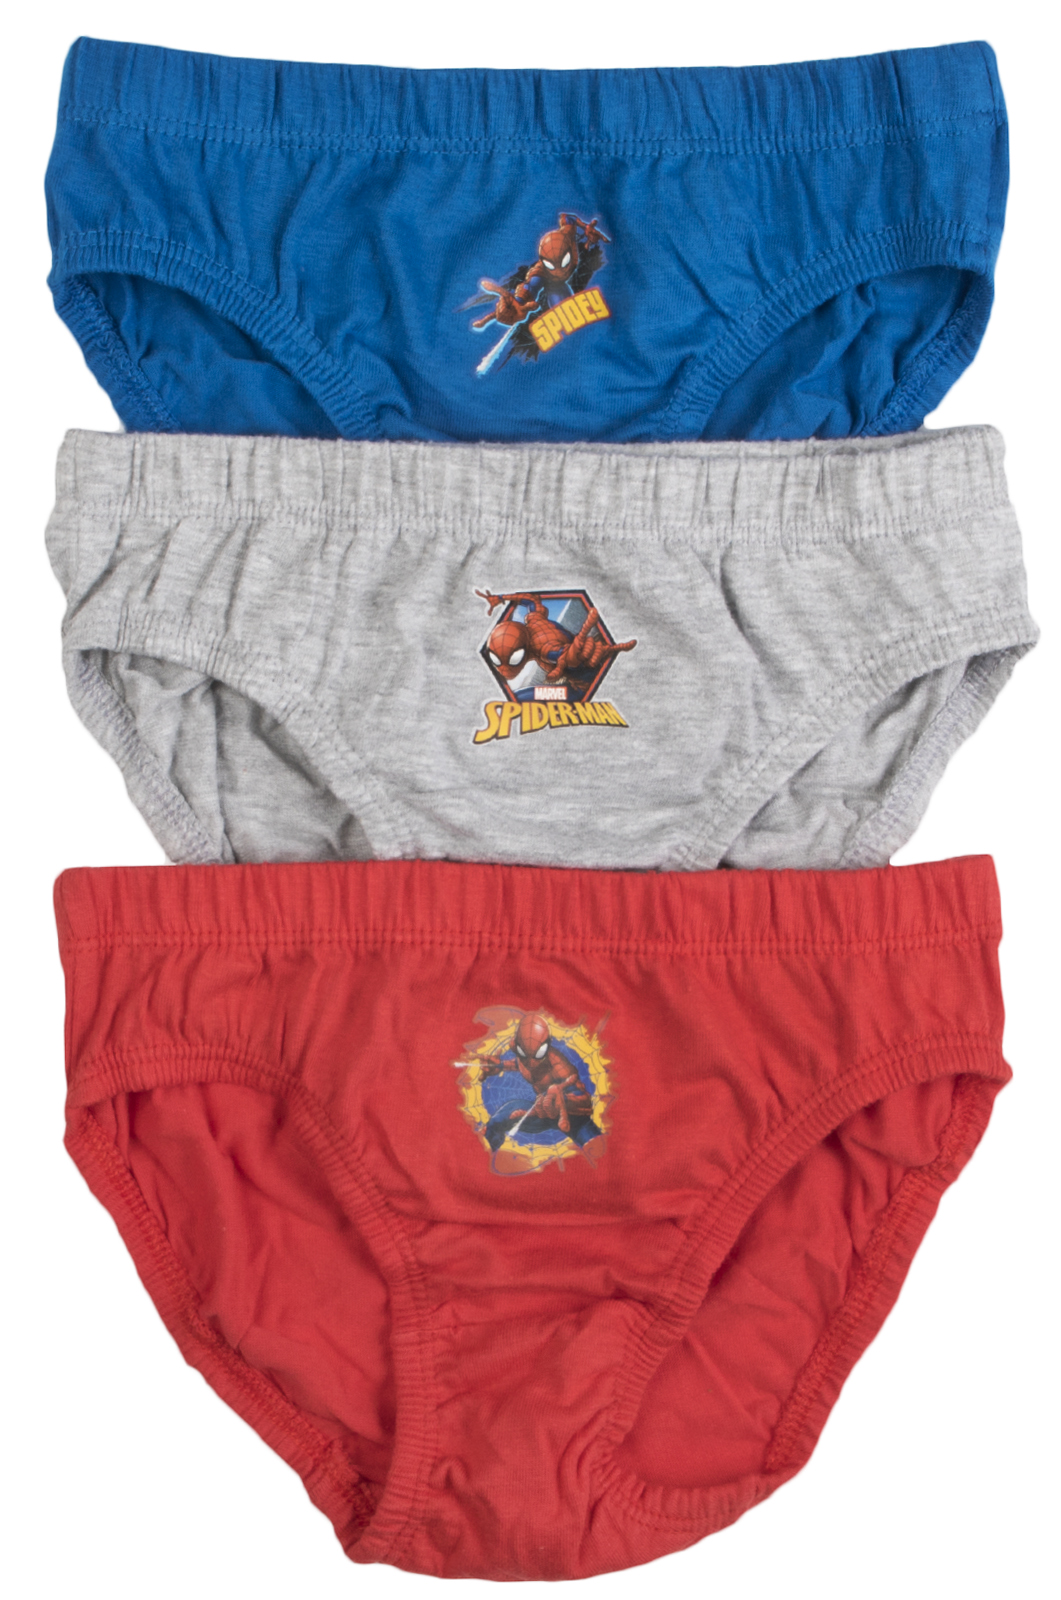 3 Pairs Boys Childrens Marvel Avengers Character Briefs Cotton Pants Knickers